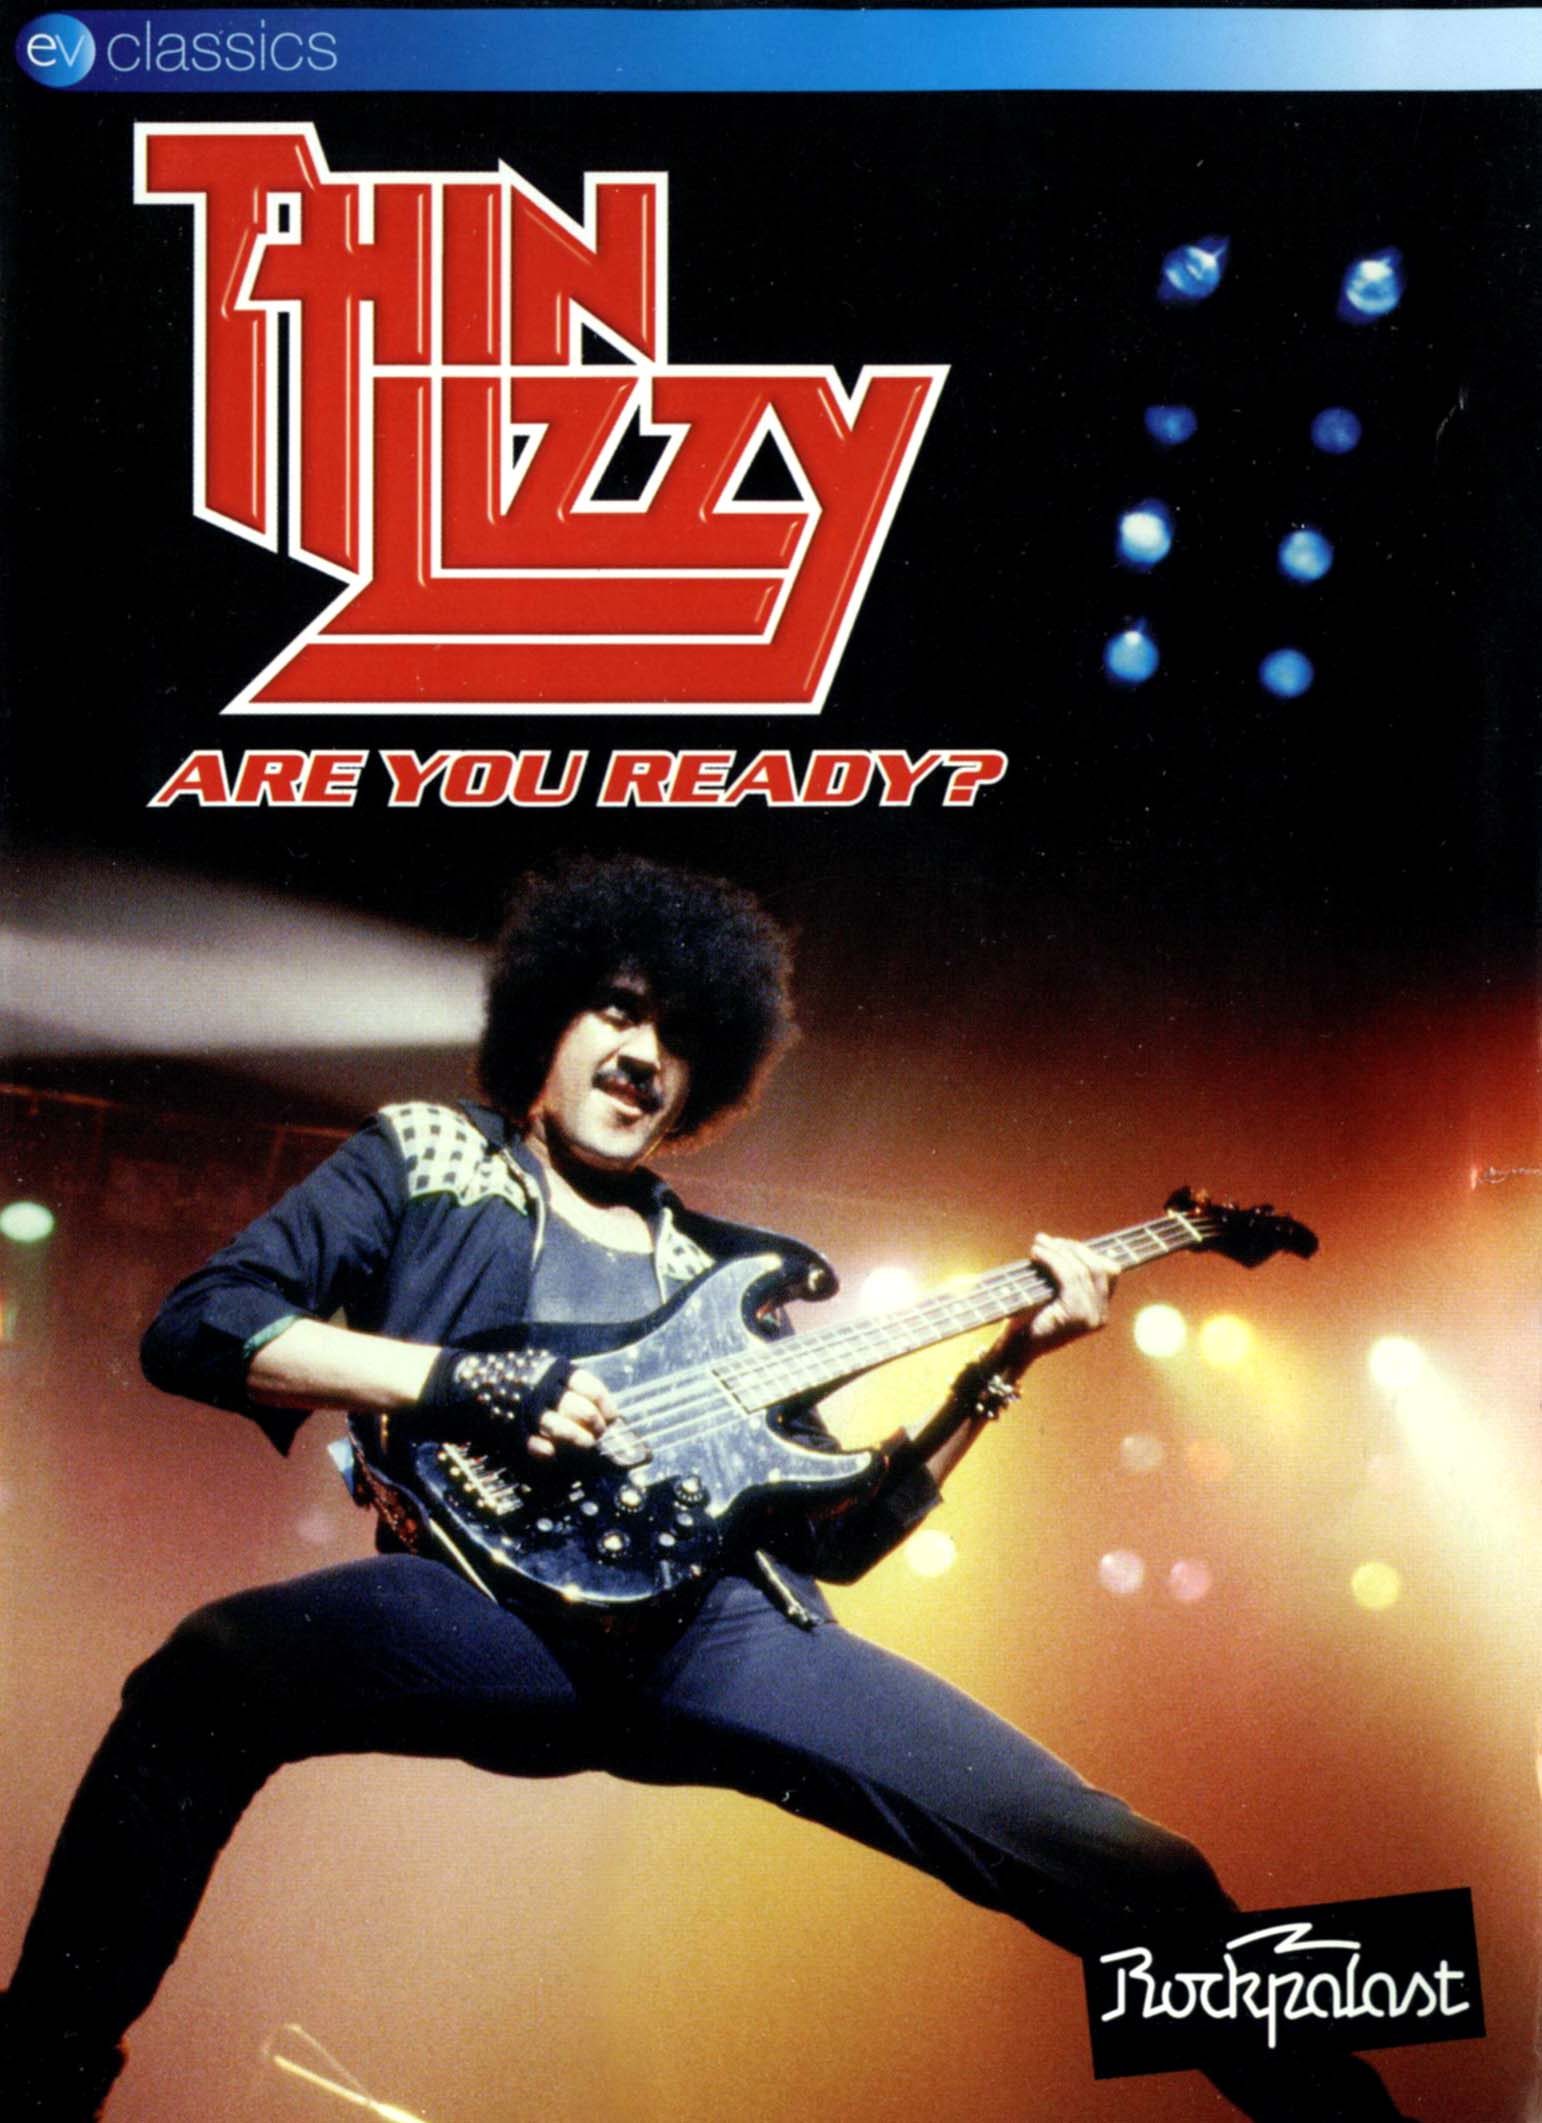 Thin Lizzy: Are You Ready?